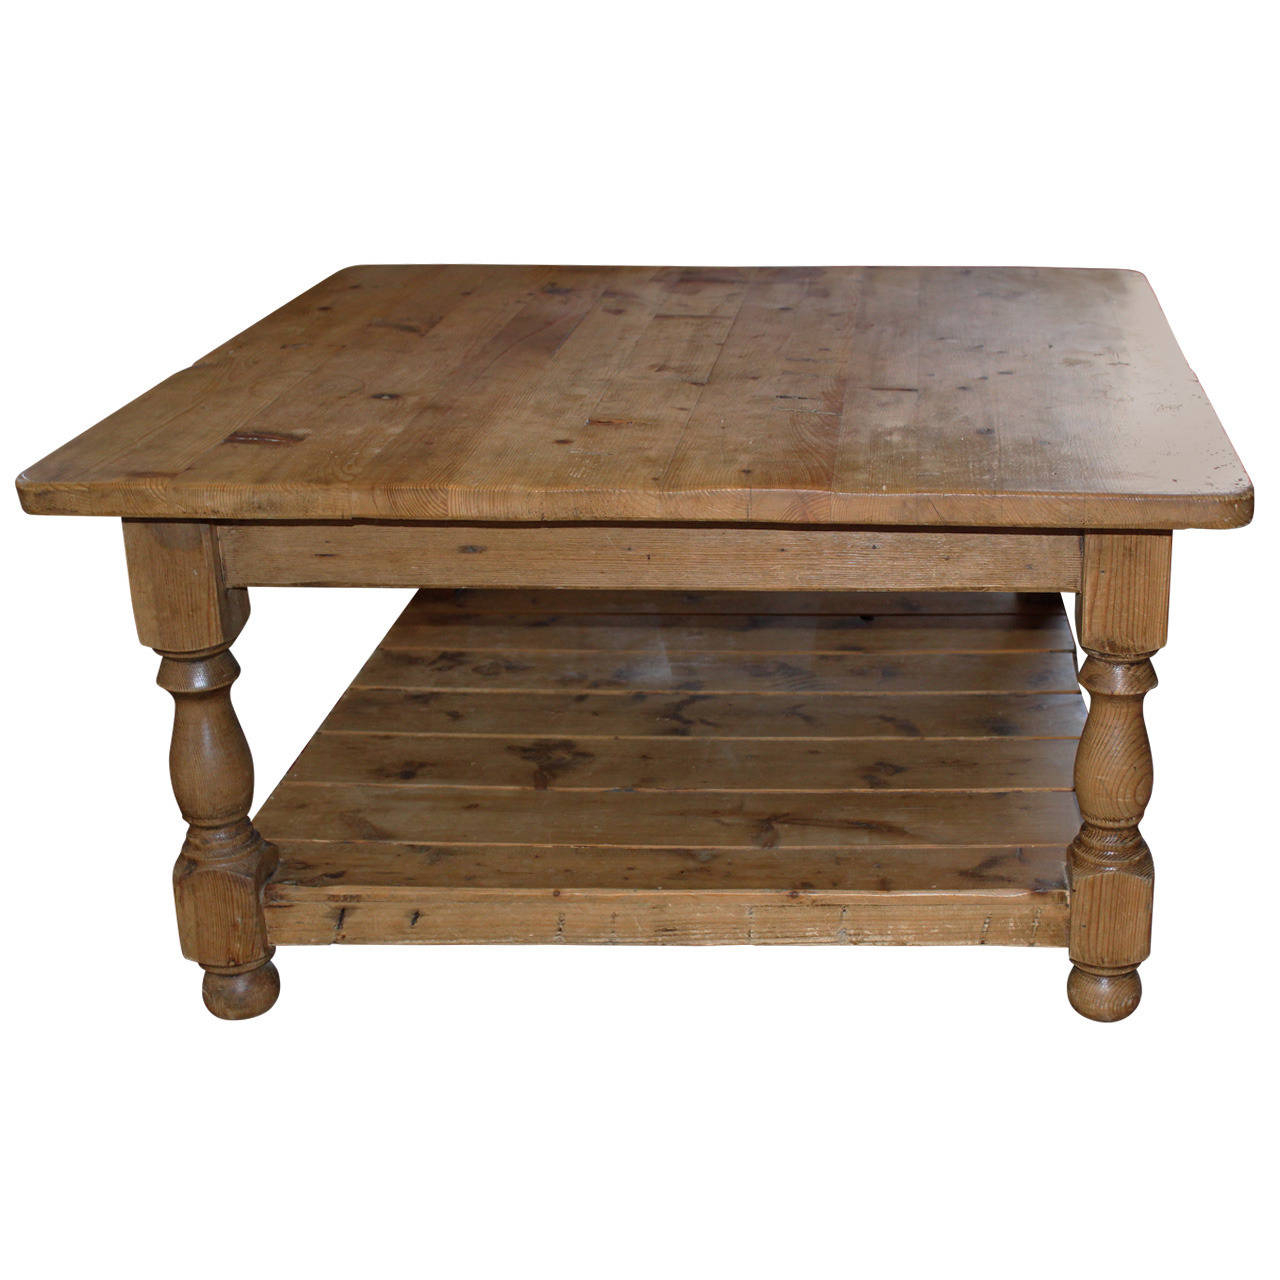 Most Current Vintage English Pine Coffee Table At 1stdibs With Regard To Antique Pine Coffee Tables (View 15 of 20)